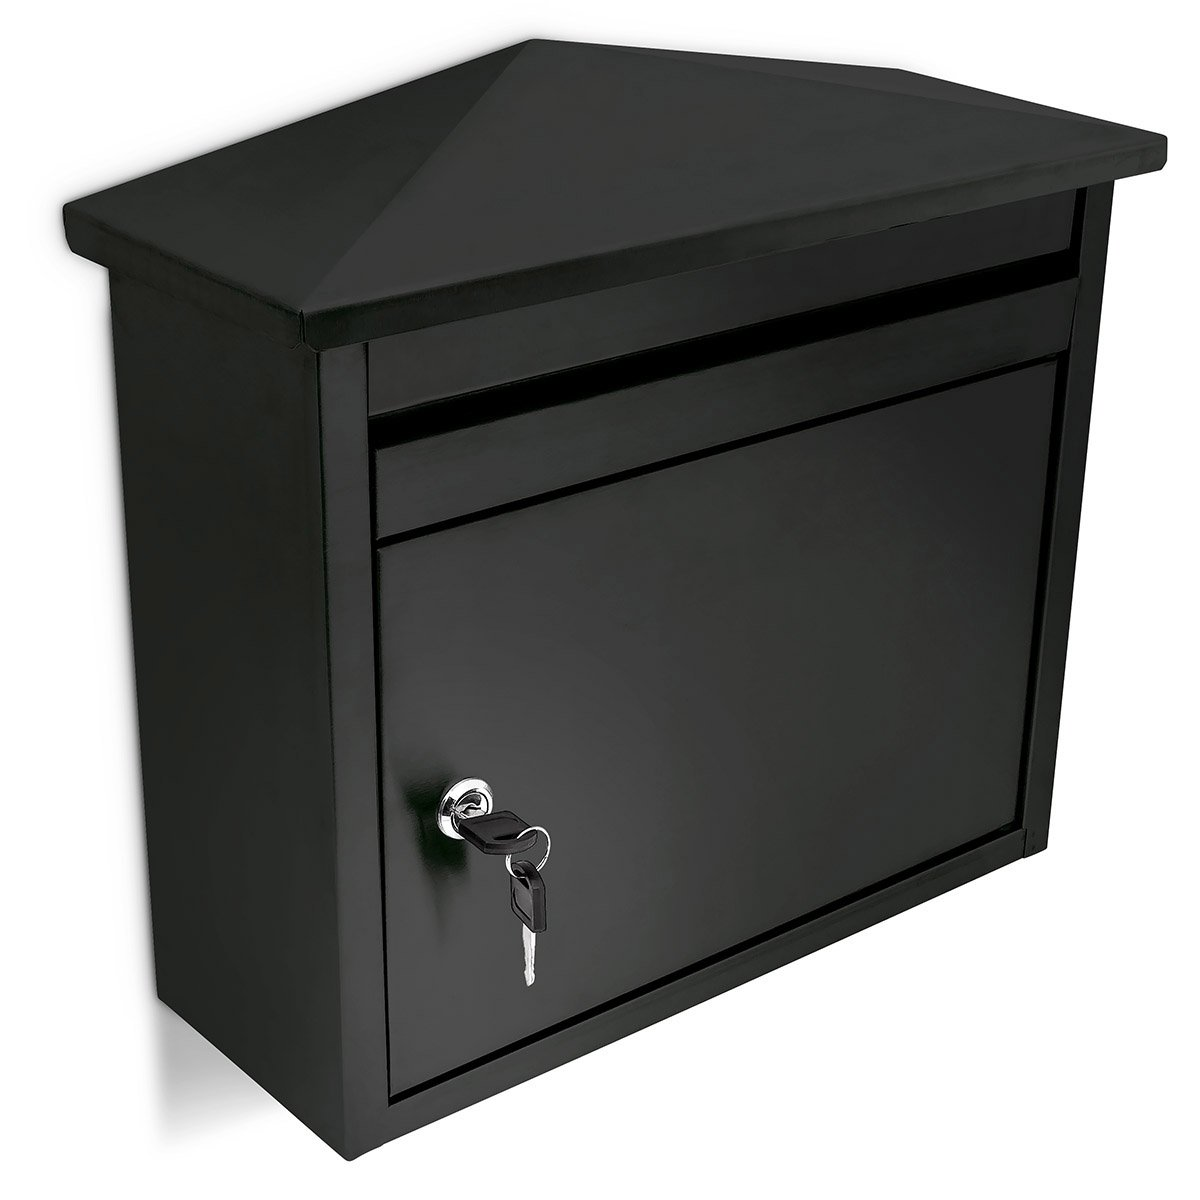 Relaxdays Mailbox 41 x 37 x 16 cm Metal Powder Coated Wall Mounted Mailbox Mail Box Weather-Resistant Iron, Water-Repellent Paint, Black